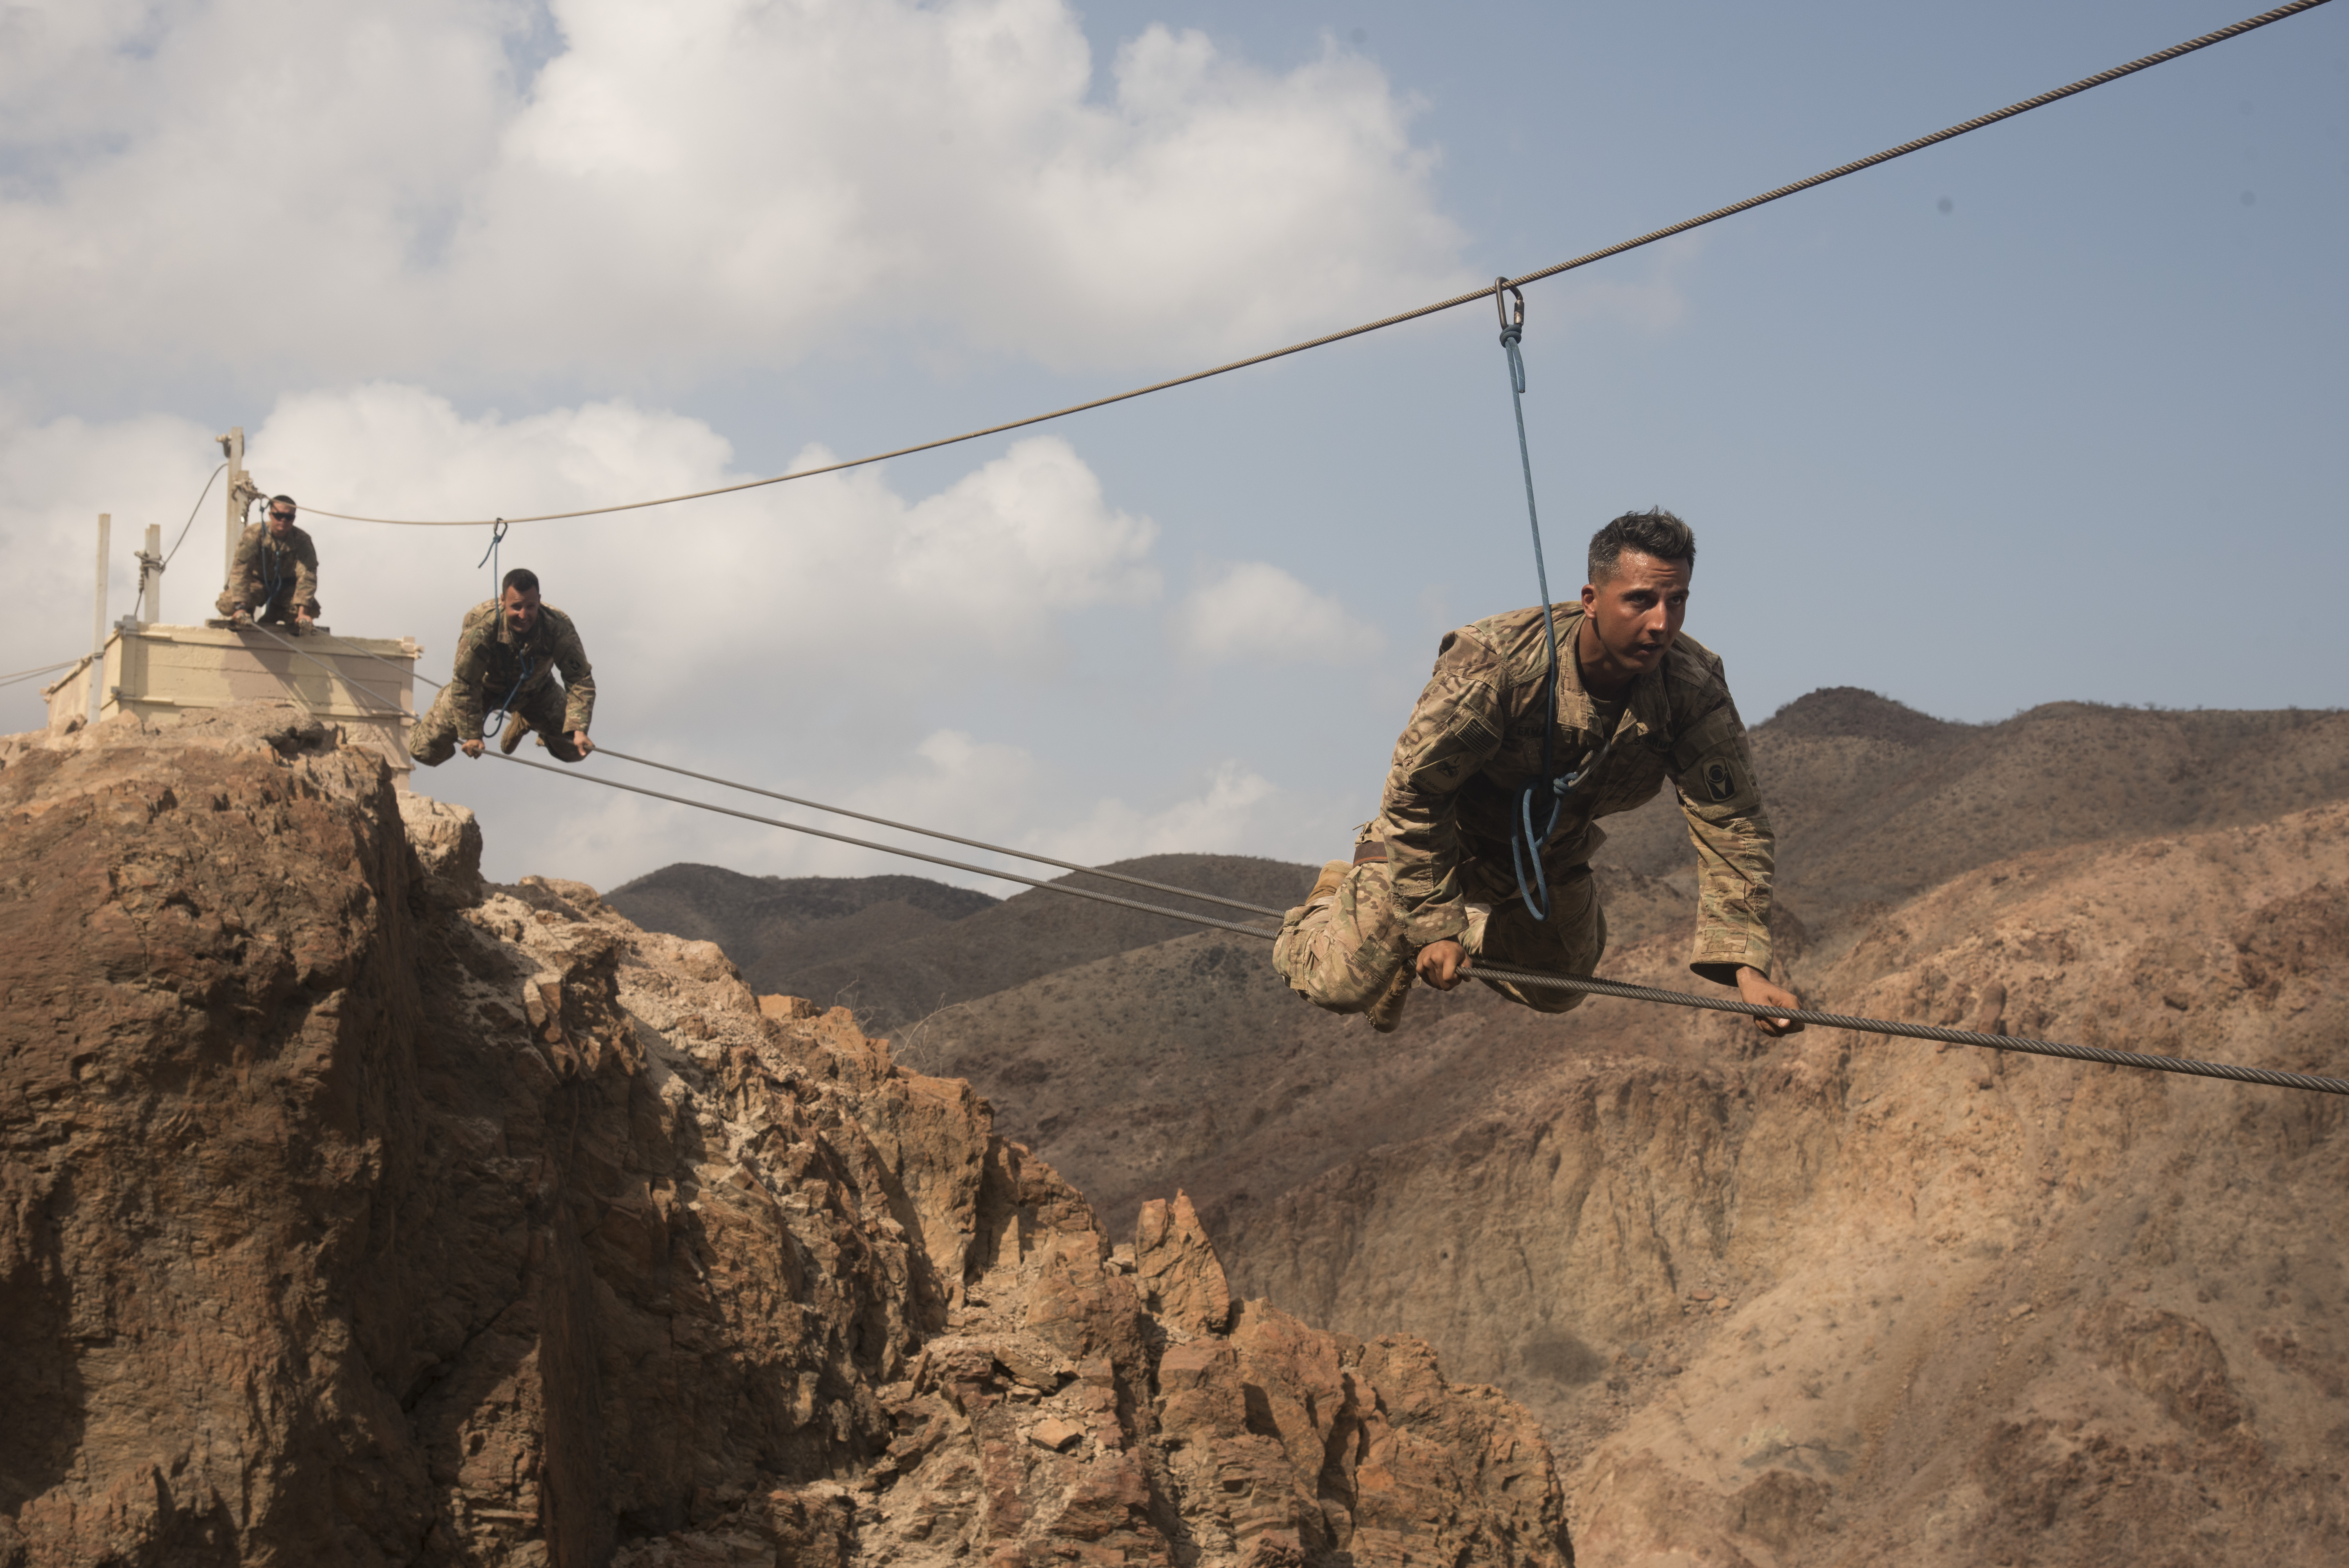 ARTA PLAGE, Djibouti – U.S. Army Soldiers from the 1st Battalion, 124th Infantry Regiment, assigned to Combined Joint Task Force-Horn of Africa, make their way across a portion of the mountain obstacle course, as part of the final day of the French Marines Desert Survival Course, Oct. 10, 2016, at Arta Plage, Djibouti. Approximately 46 U.S. Army Soldiers with French Marines completed several tasks during the survival course, including desert operations, combat lifesaving skills, weapons training, survival cooking, how to decontaminate water, and water and mountain obstacle courses. (U.S. Air Force photo by Staff Sgt. Tiffany DeNault)